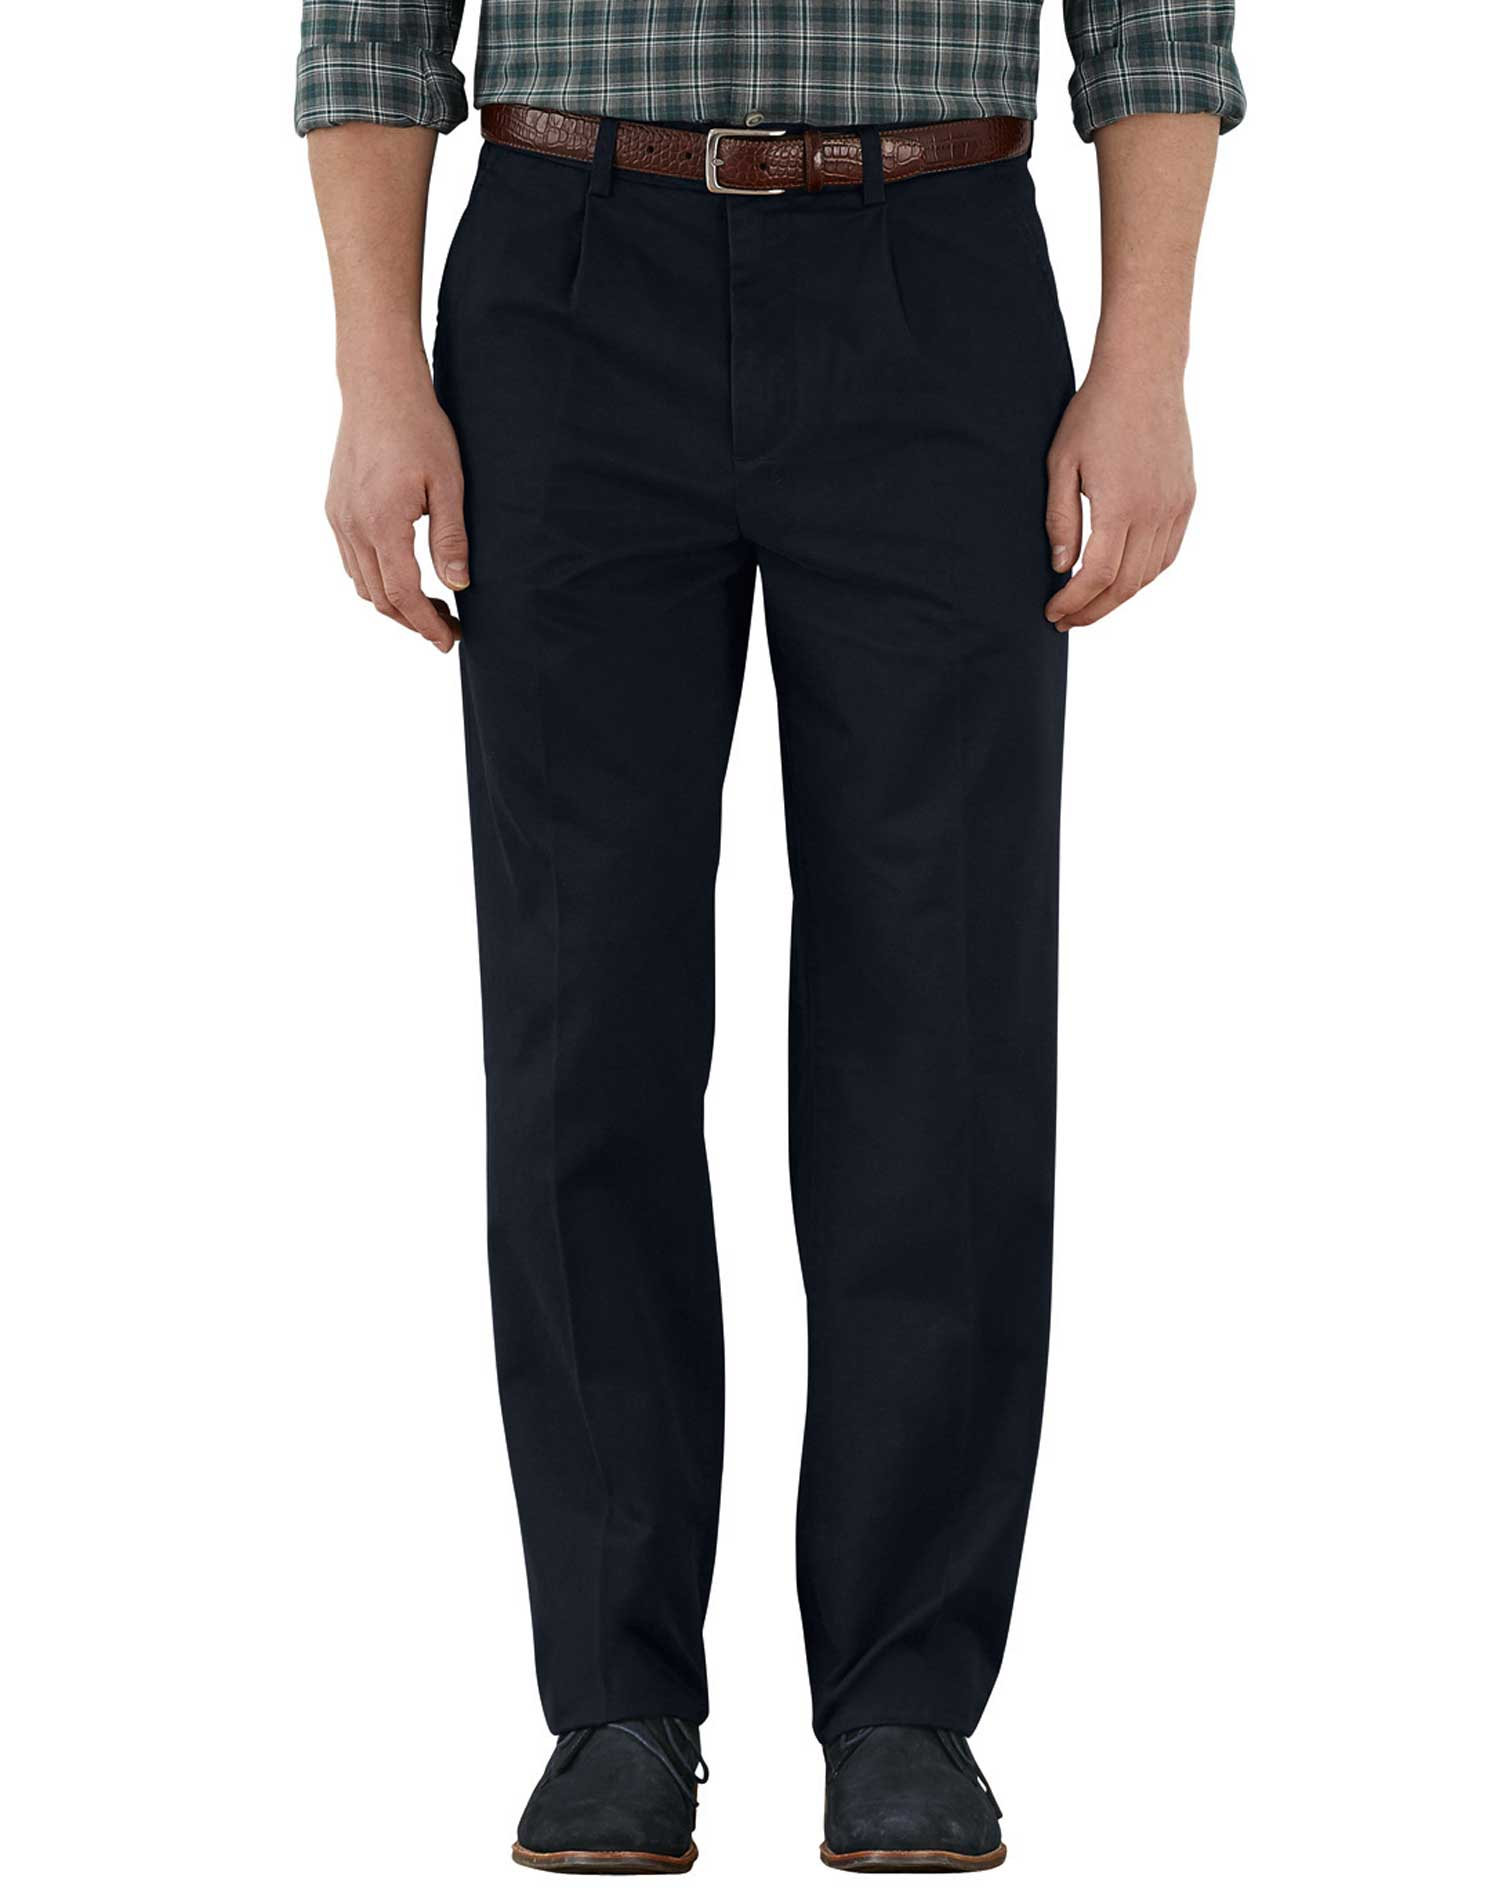 Navy Classic Fit Single Pleat Weekend Cotton Chino Trousers Size W36 L34 by Charles Tyrwhitt